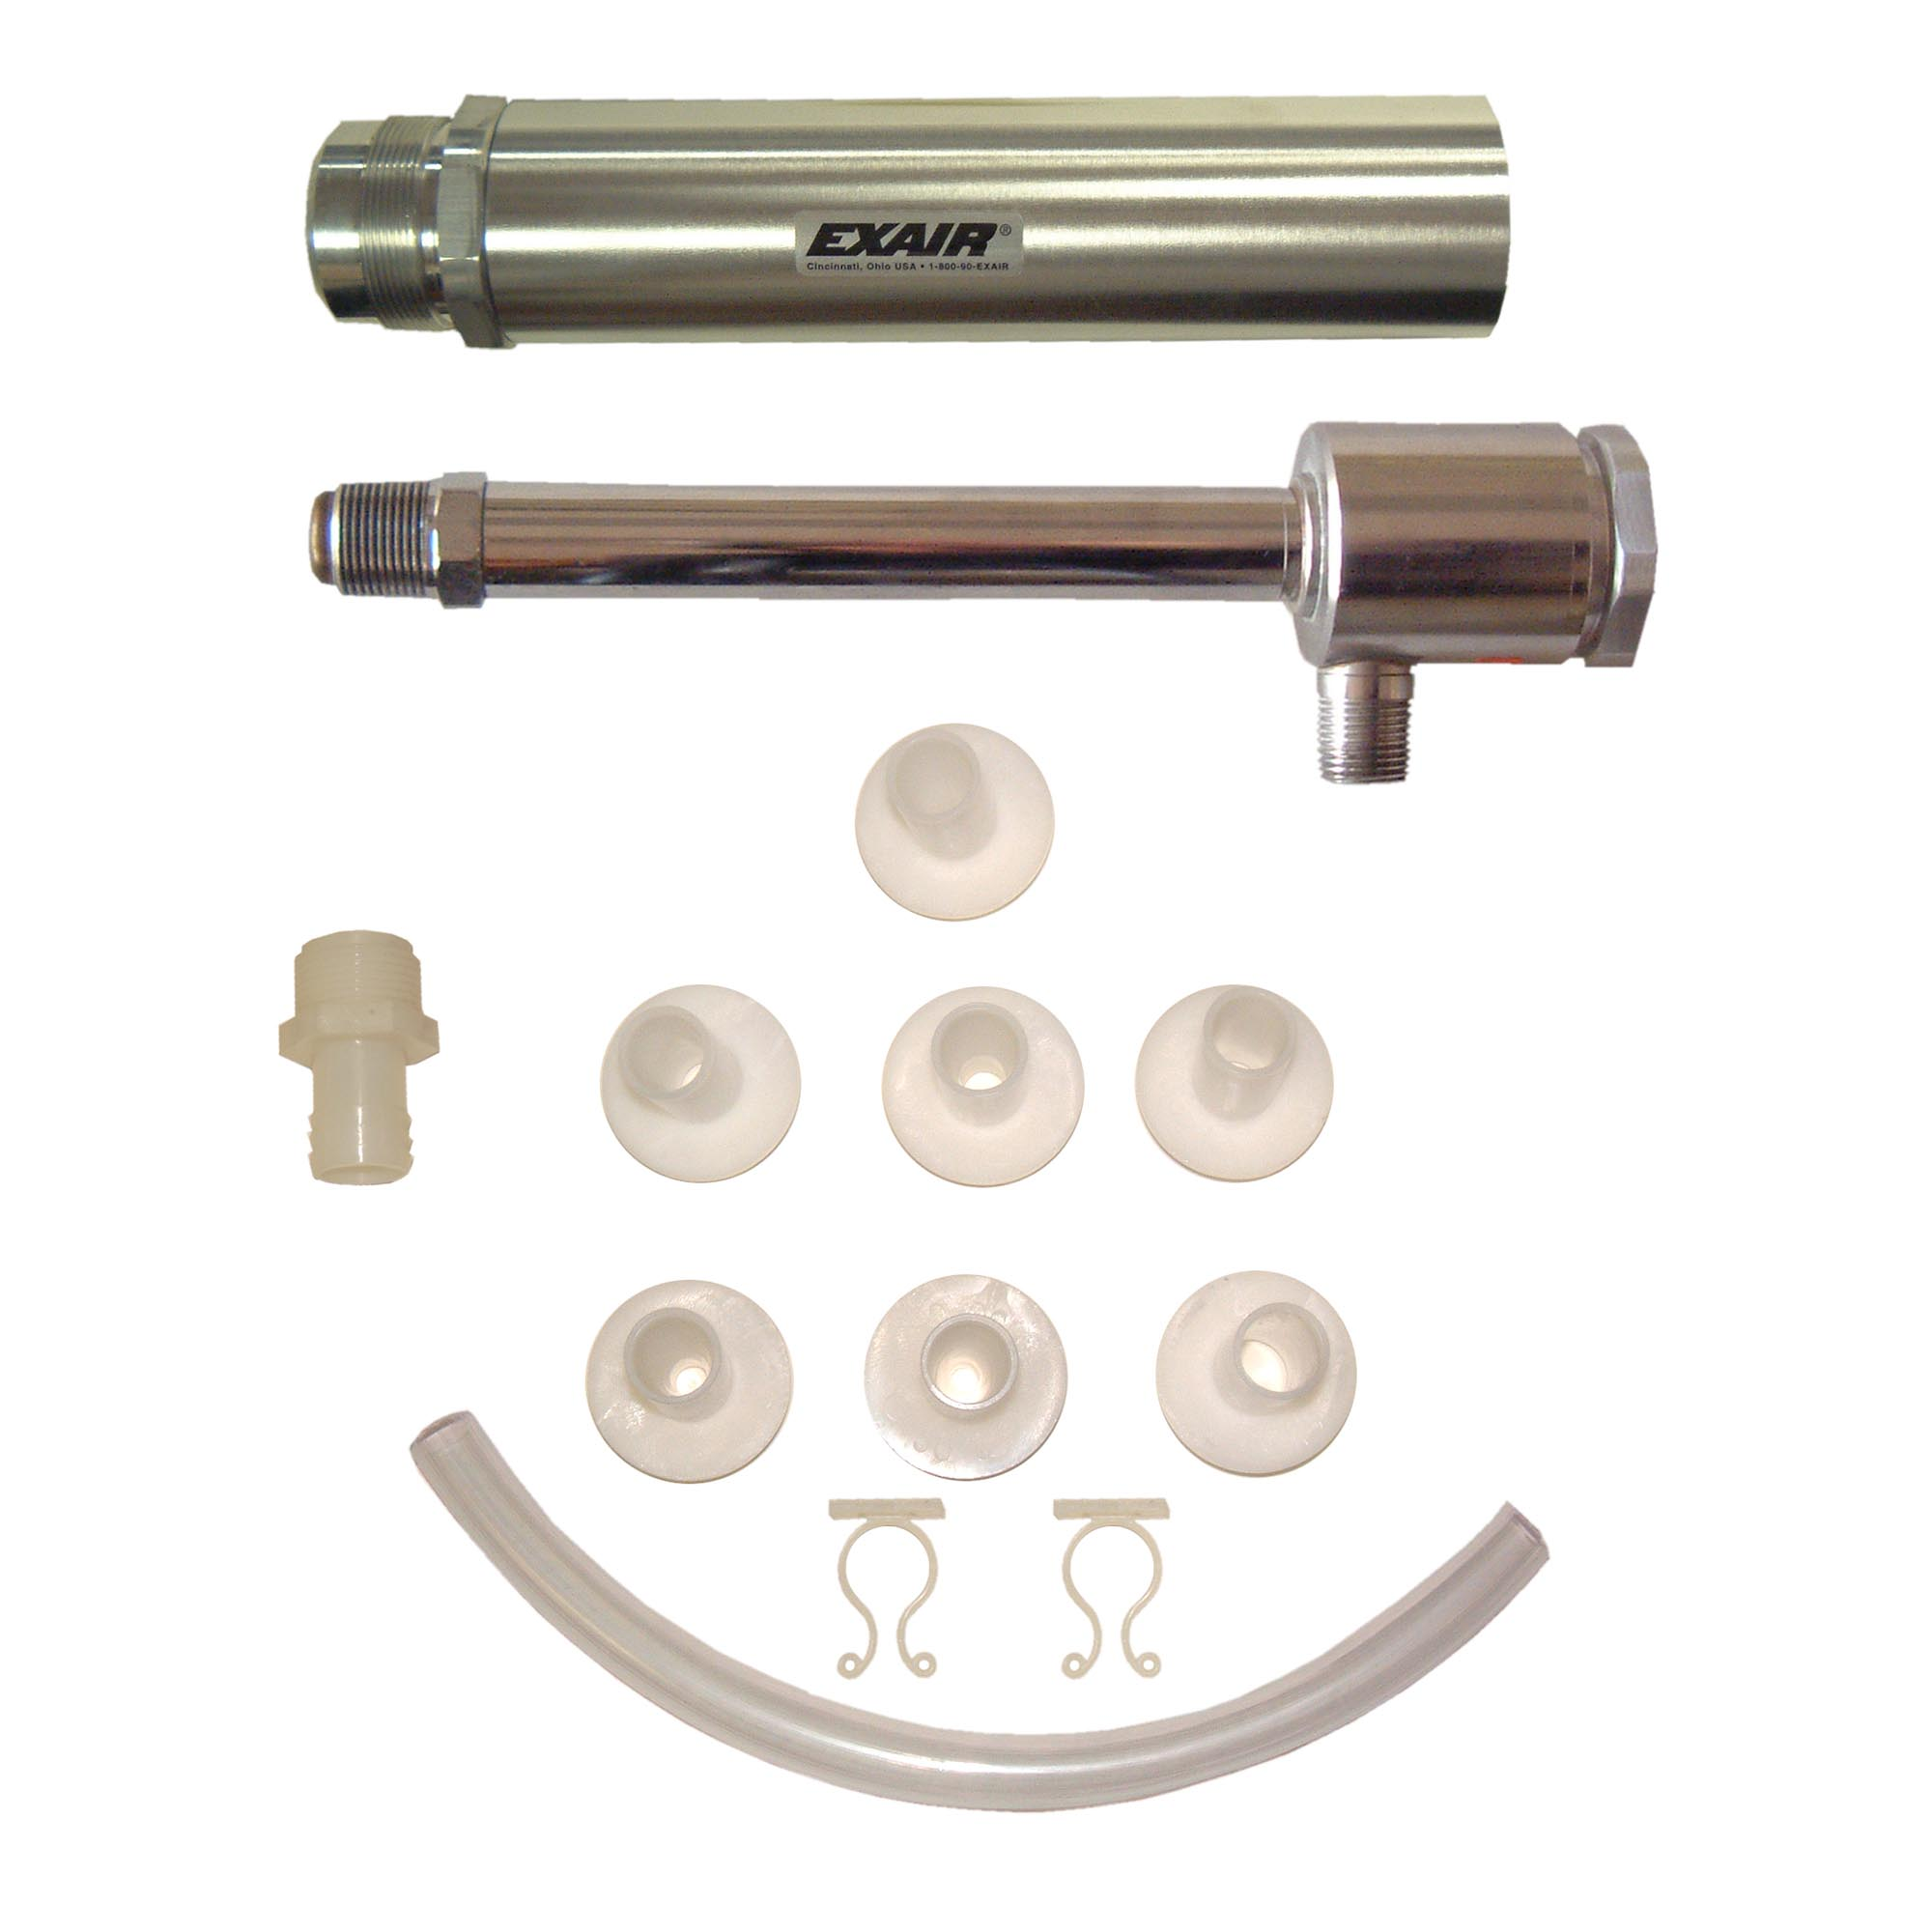 Vortex Tube cooling kits include generators, filter, muffler and fittings